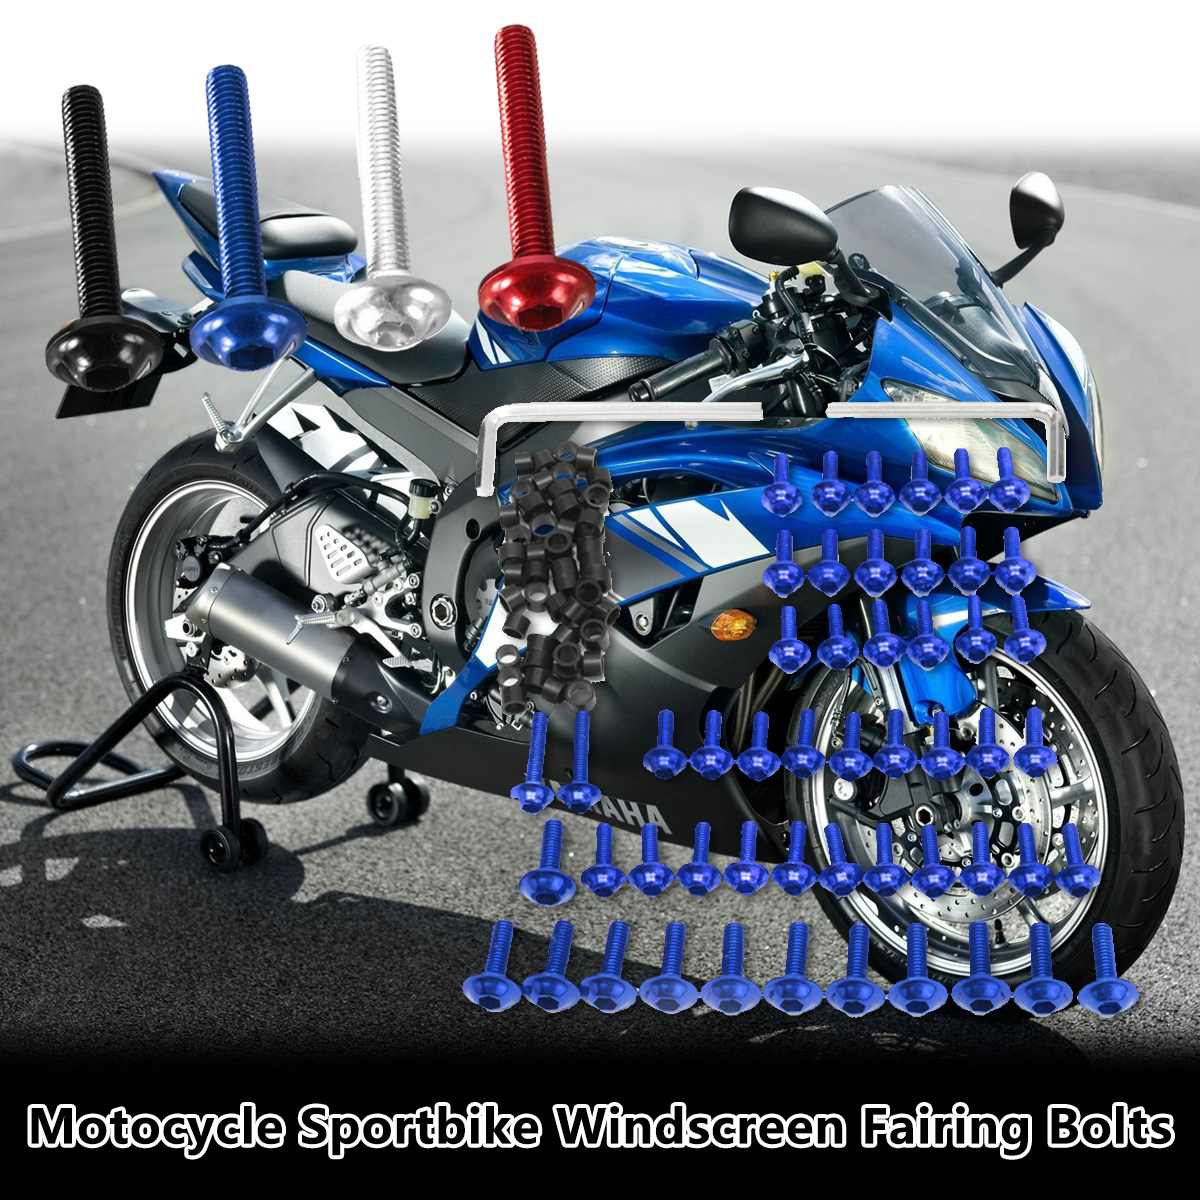 158pcs Motorcycle Fairing Bolts Kit Fastener Clips Screw For <font><b>Yamaha</b></font> YZF <font><b>R6</b></font> 1999 <font><b>2000</b></font> 2001 2002 image